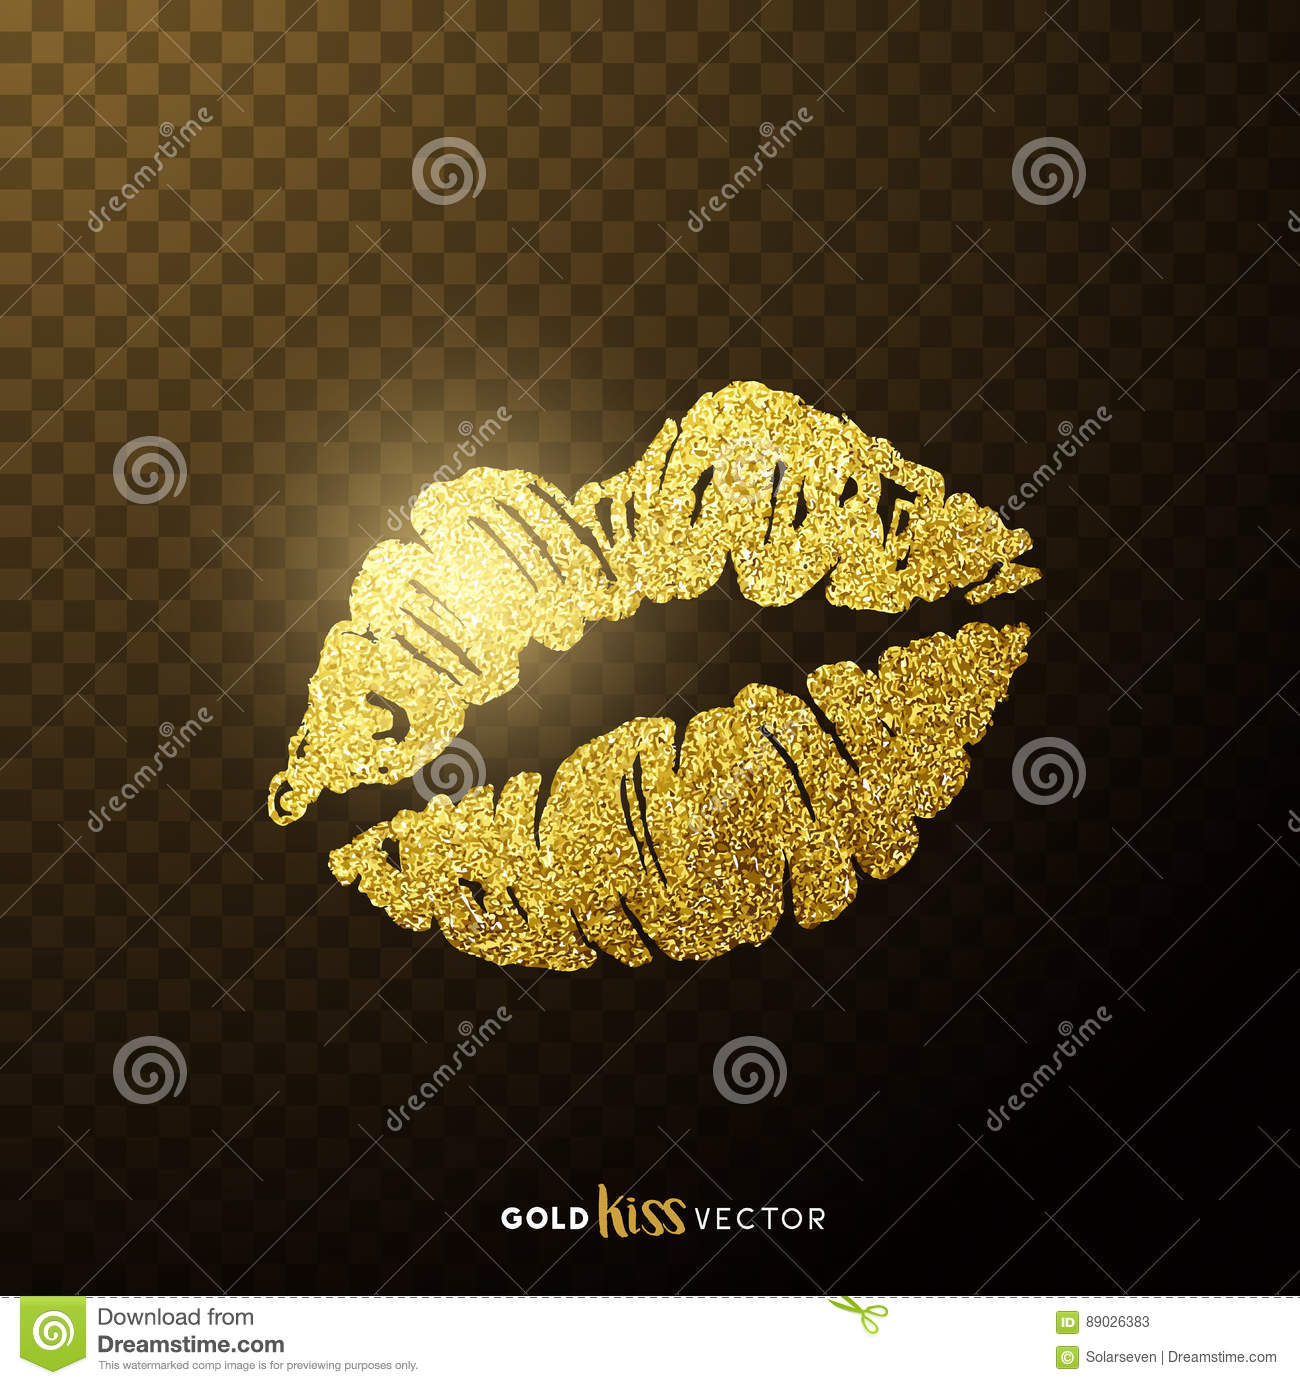 Gold Kissing Lips